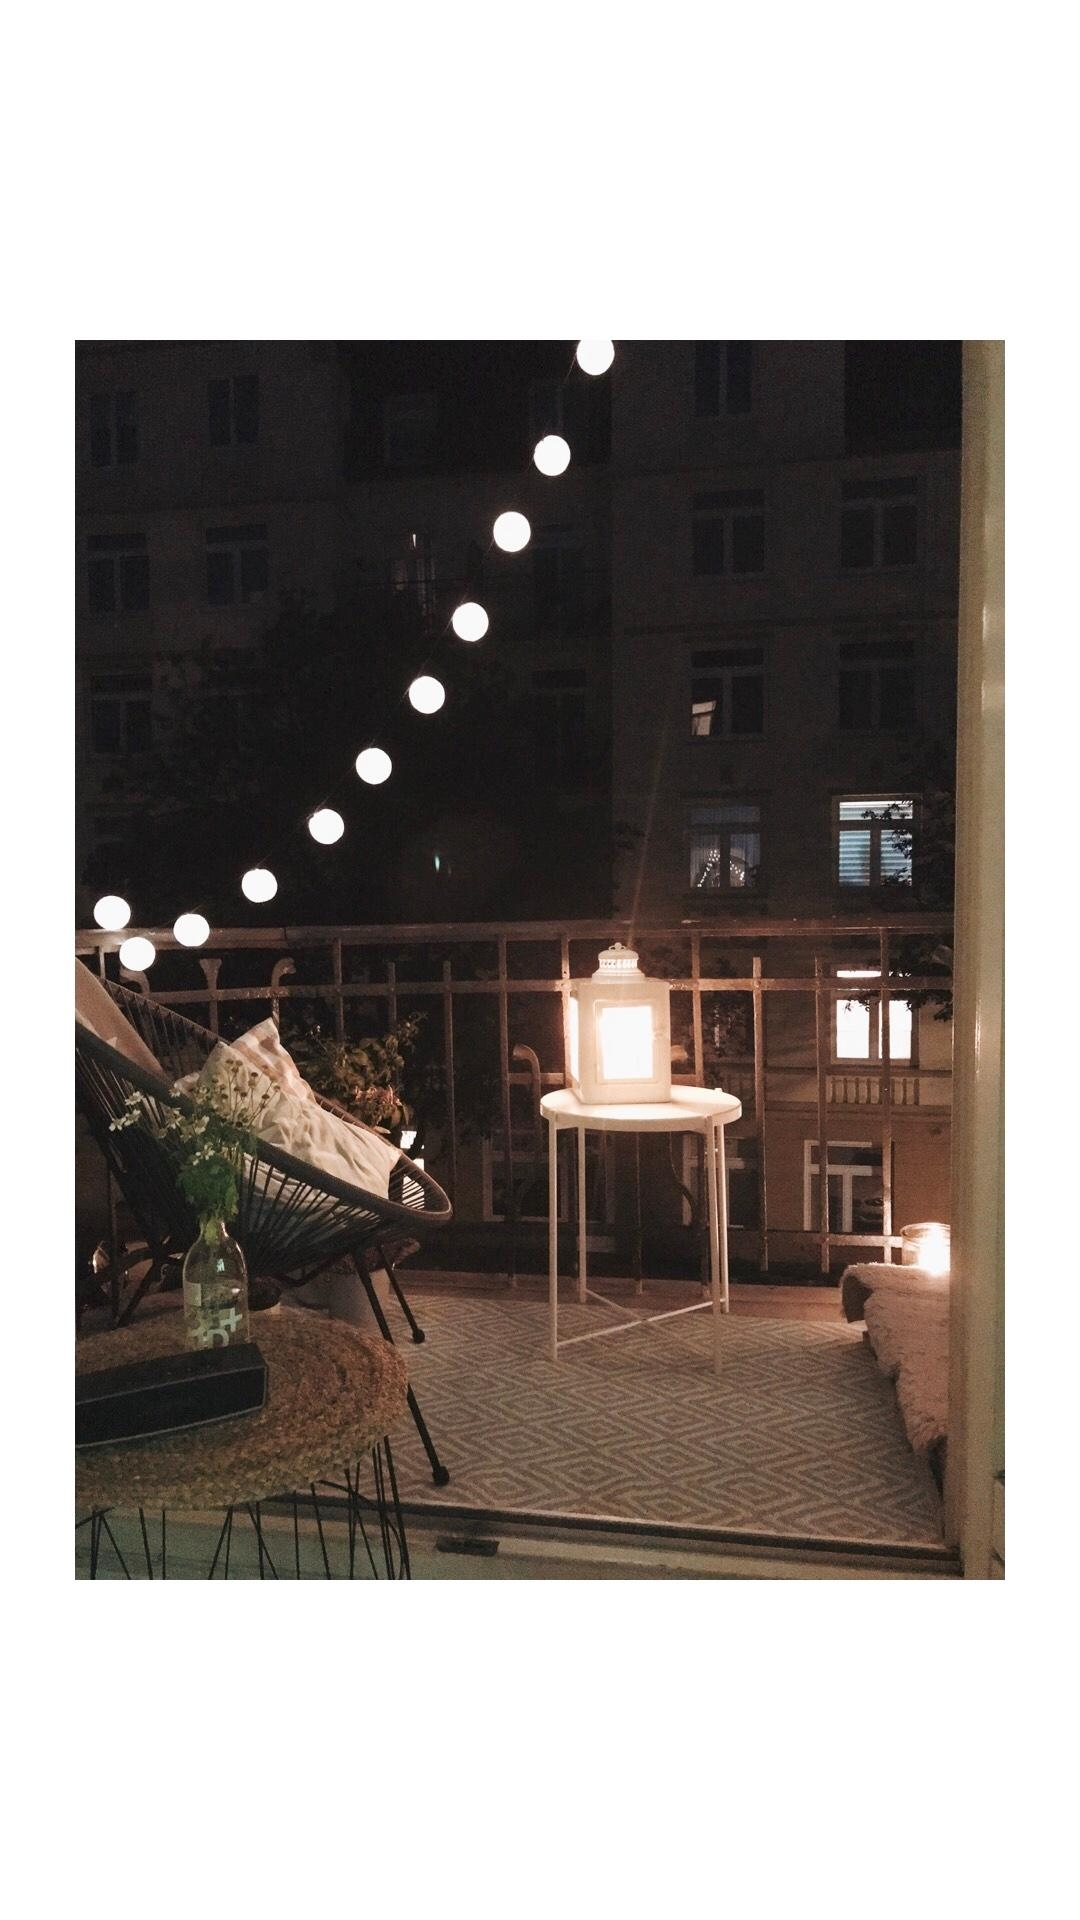 Sommerabende ✨